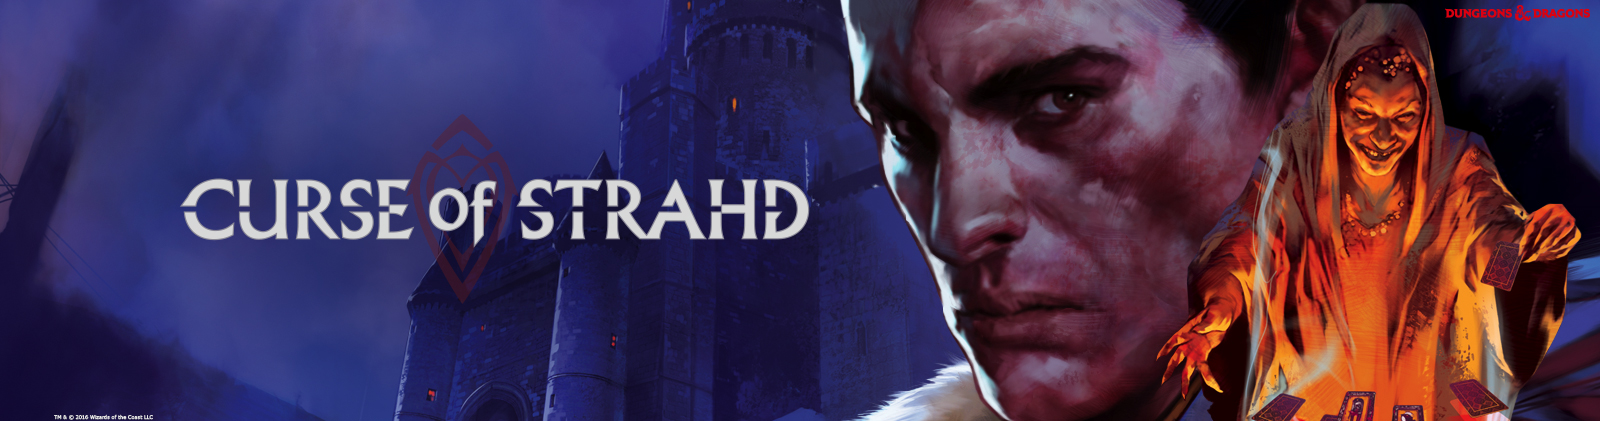 D d ravenloft twitter header